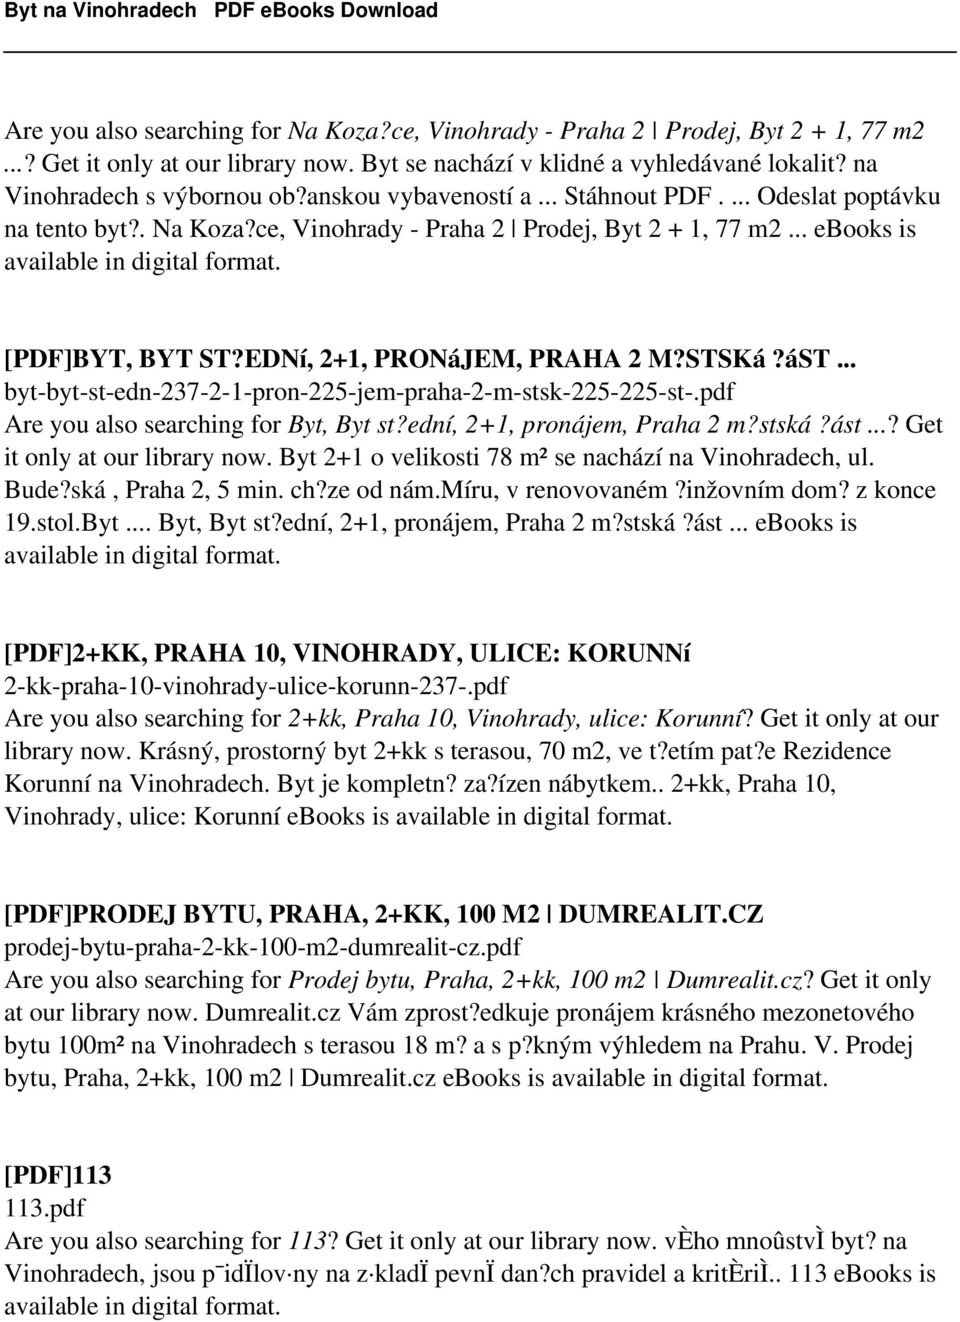 áST... byt-byt-st-edn-237-2-1-pron-225-jem-praha-2-m-stsk-225-225-st-.pdf Are you also searching for Byt, Byt st?ední, 2+1, pronájem, Praha 2 m?stská?ást...? Get it only at our library now.